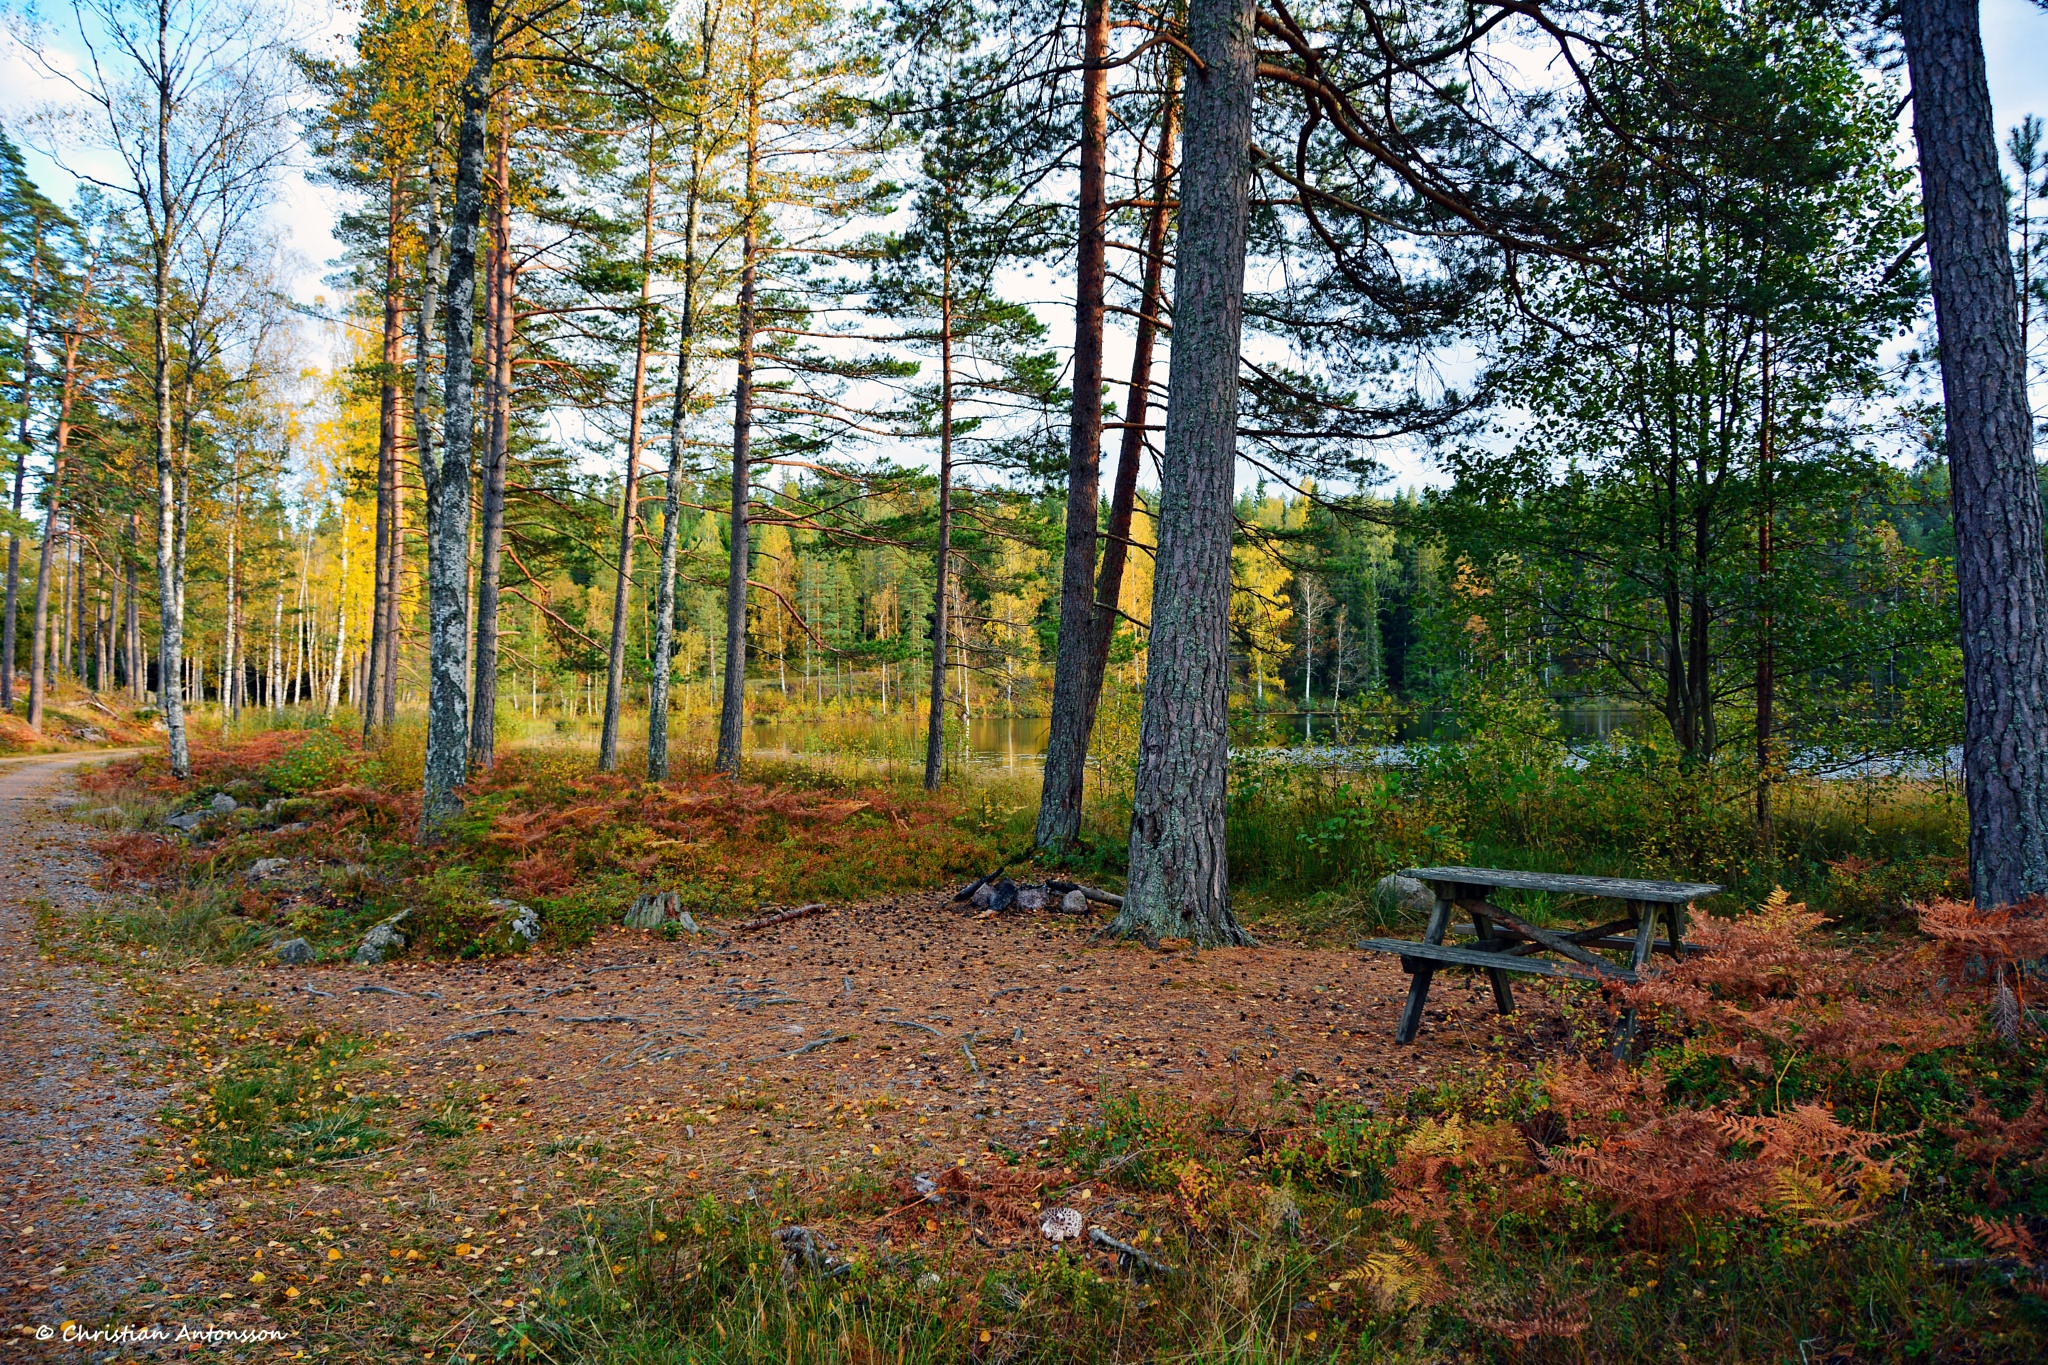 Autumn in Sweden by christian.antonsson